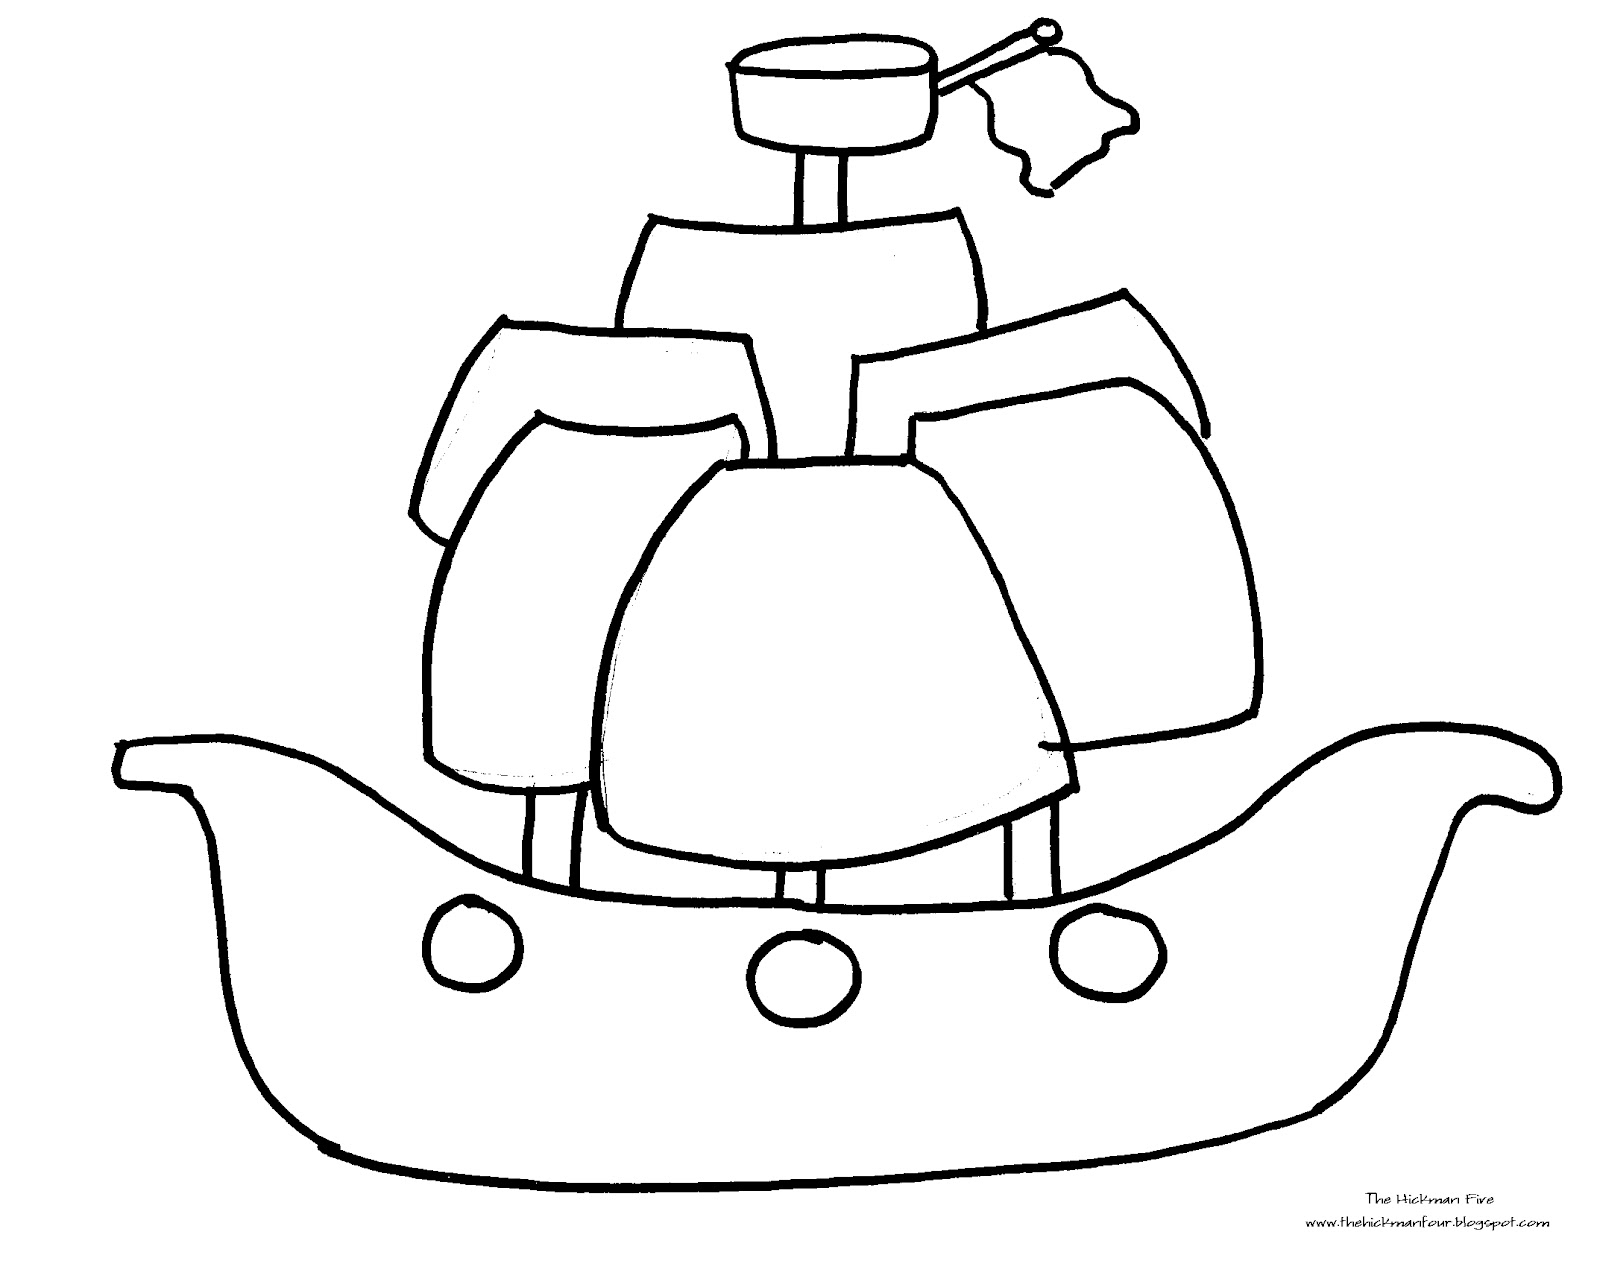 Printable Boat Coloring Pages At Getdrawings Com Free For Personal